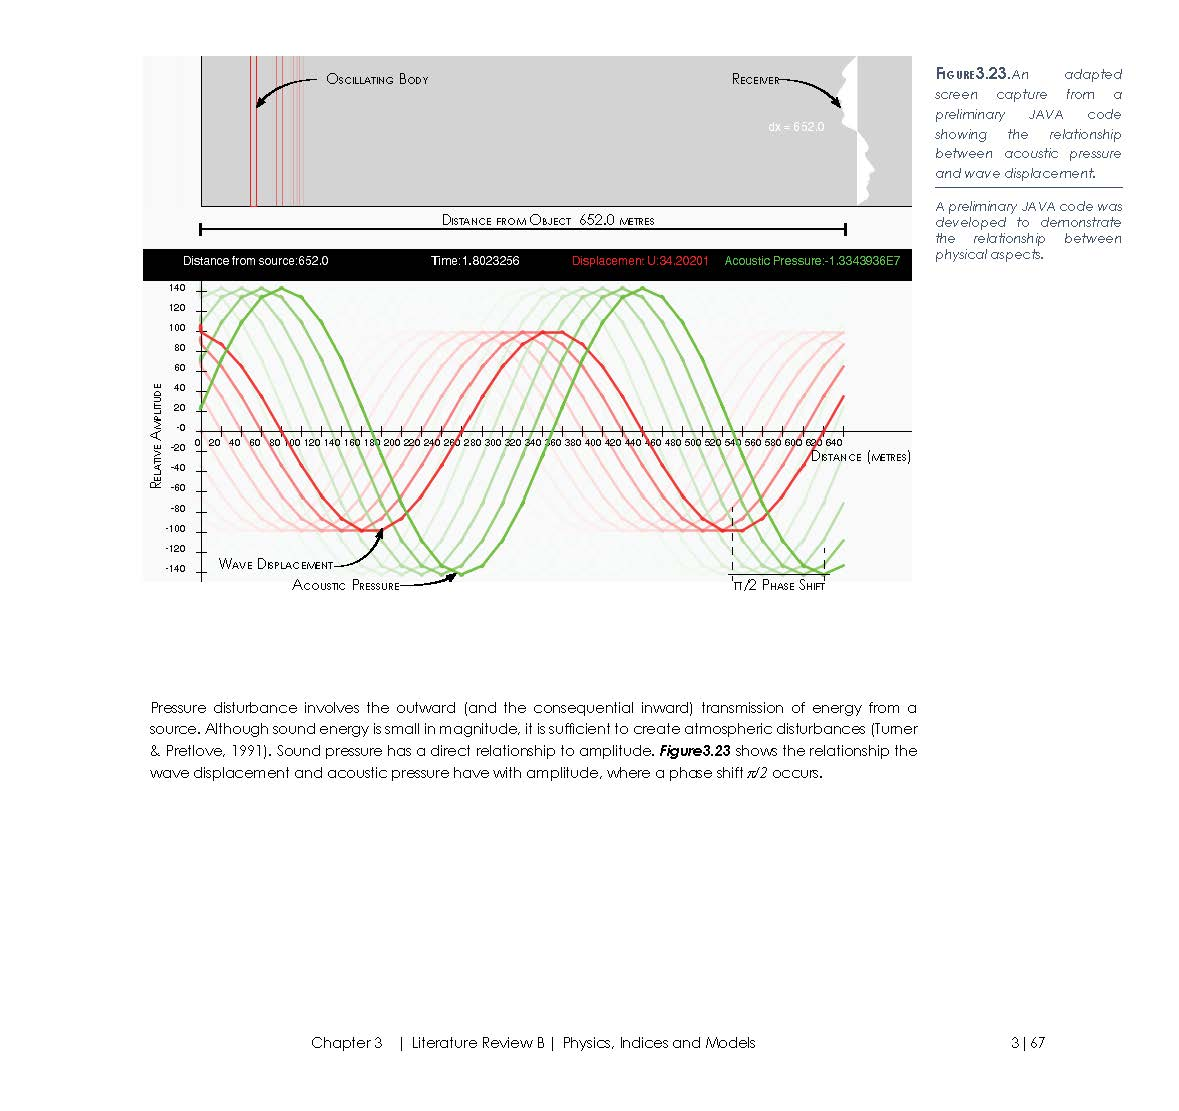 16.03.03_Thesis_01_Interactive_Page_103.jpg